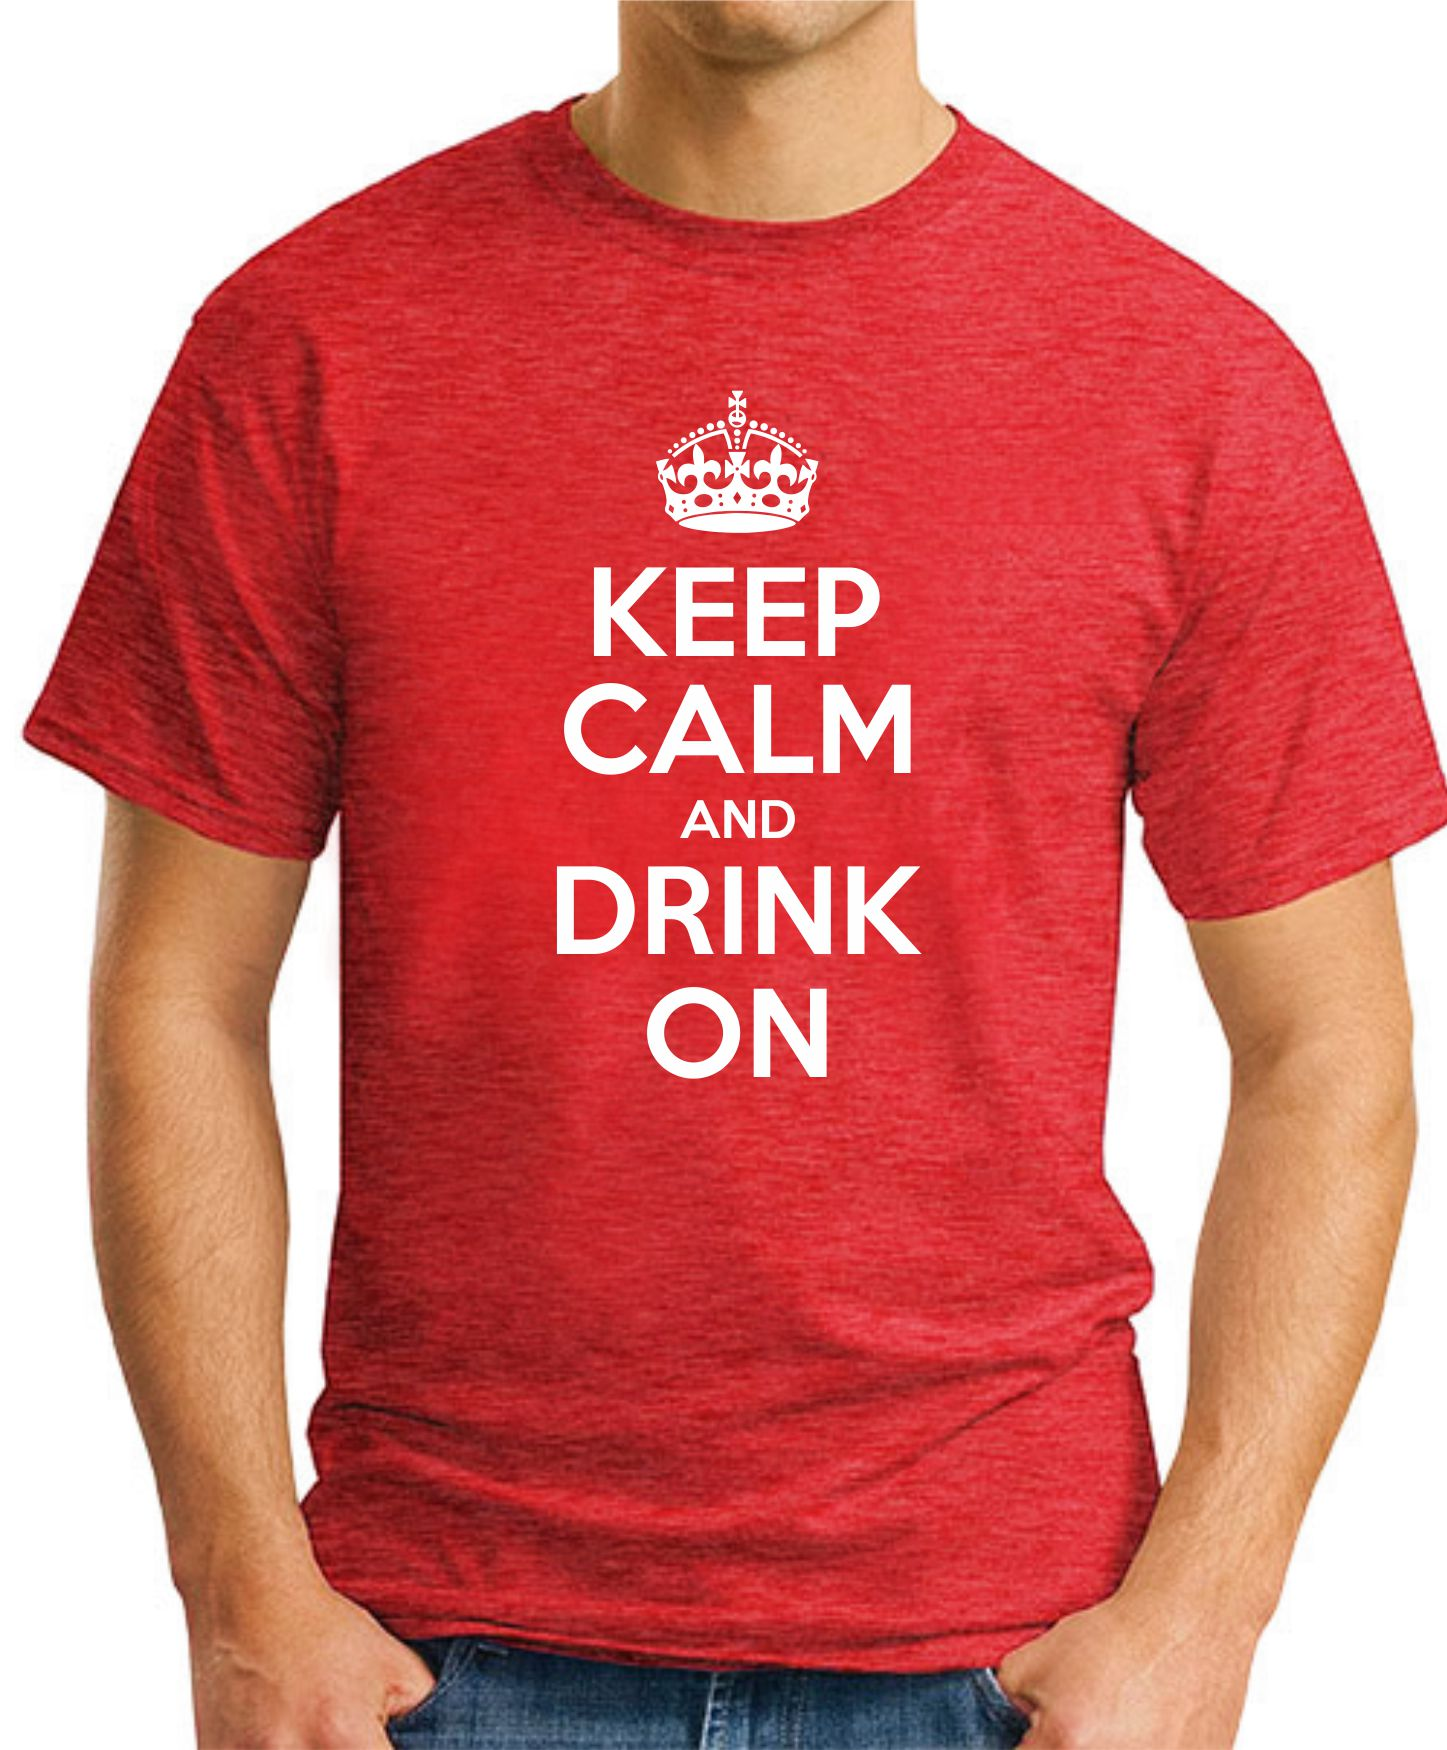 KEEP CALM AND DRINK ON red